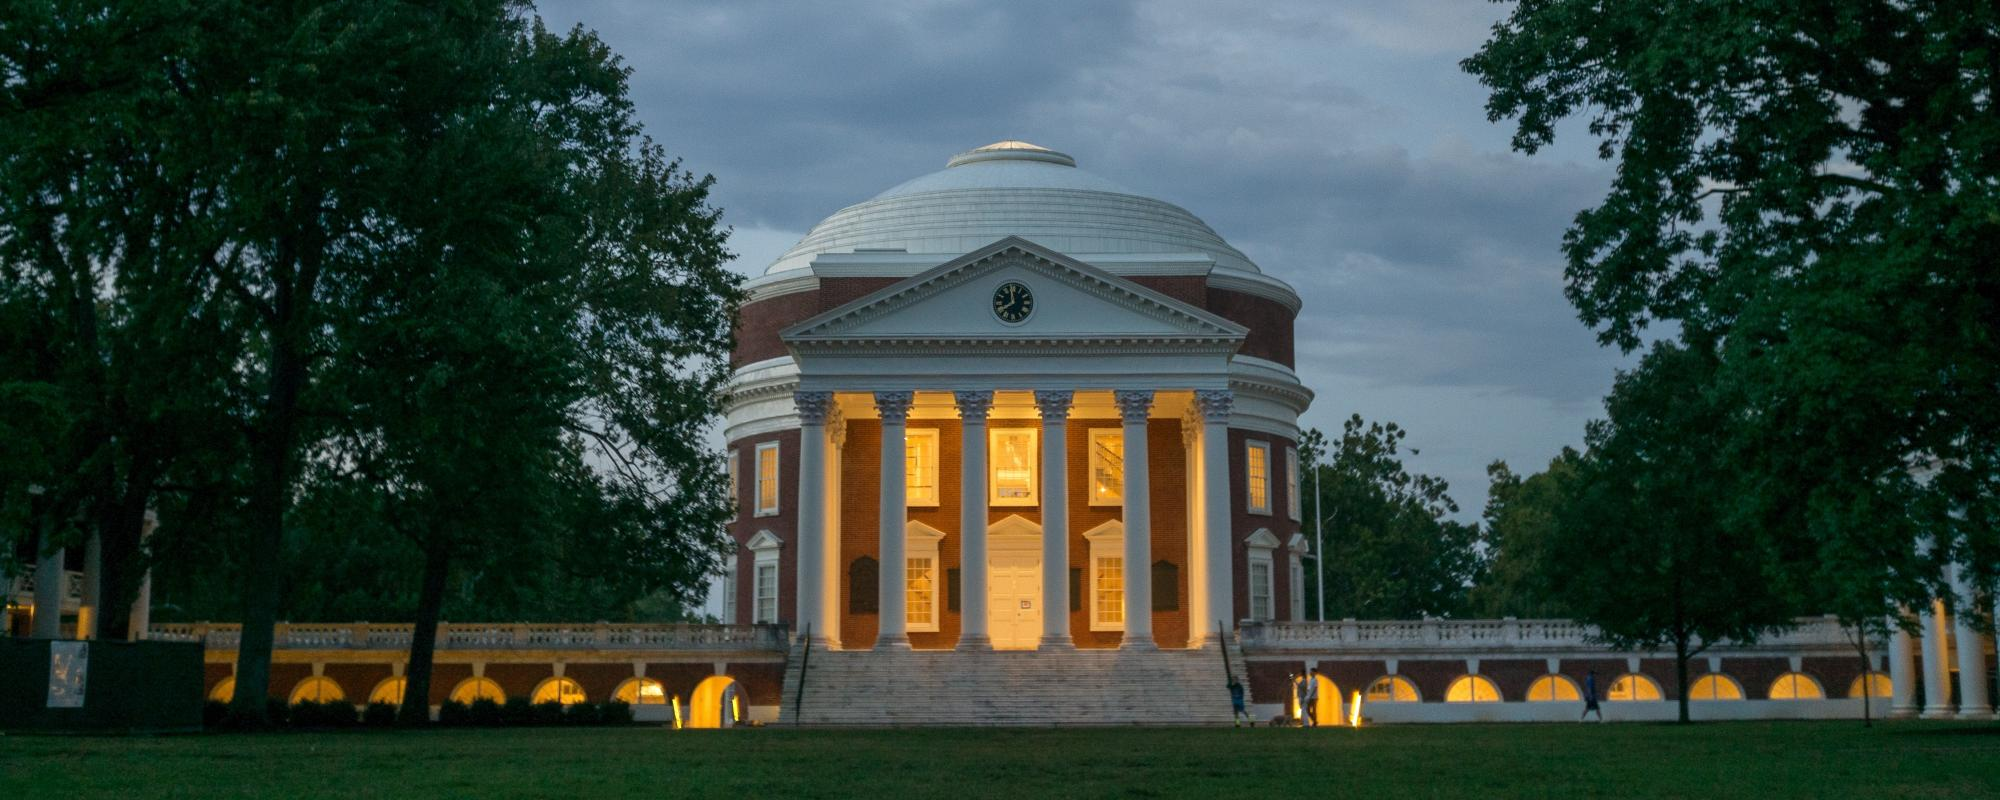 Front of Rotunda at dusk